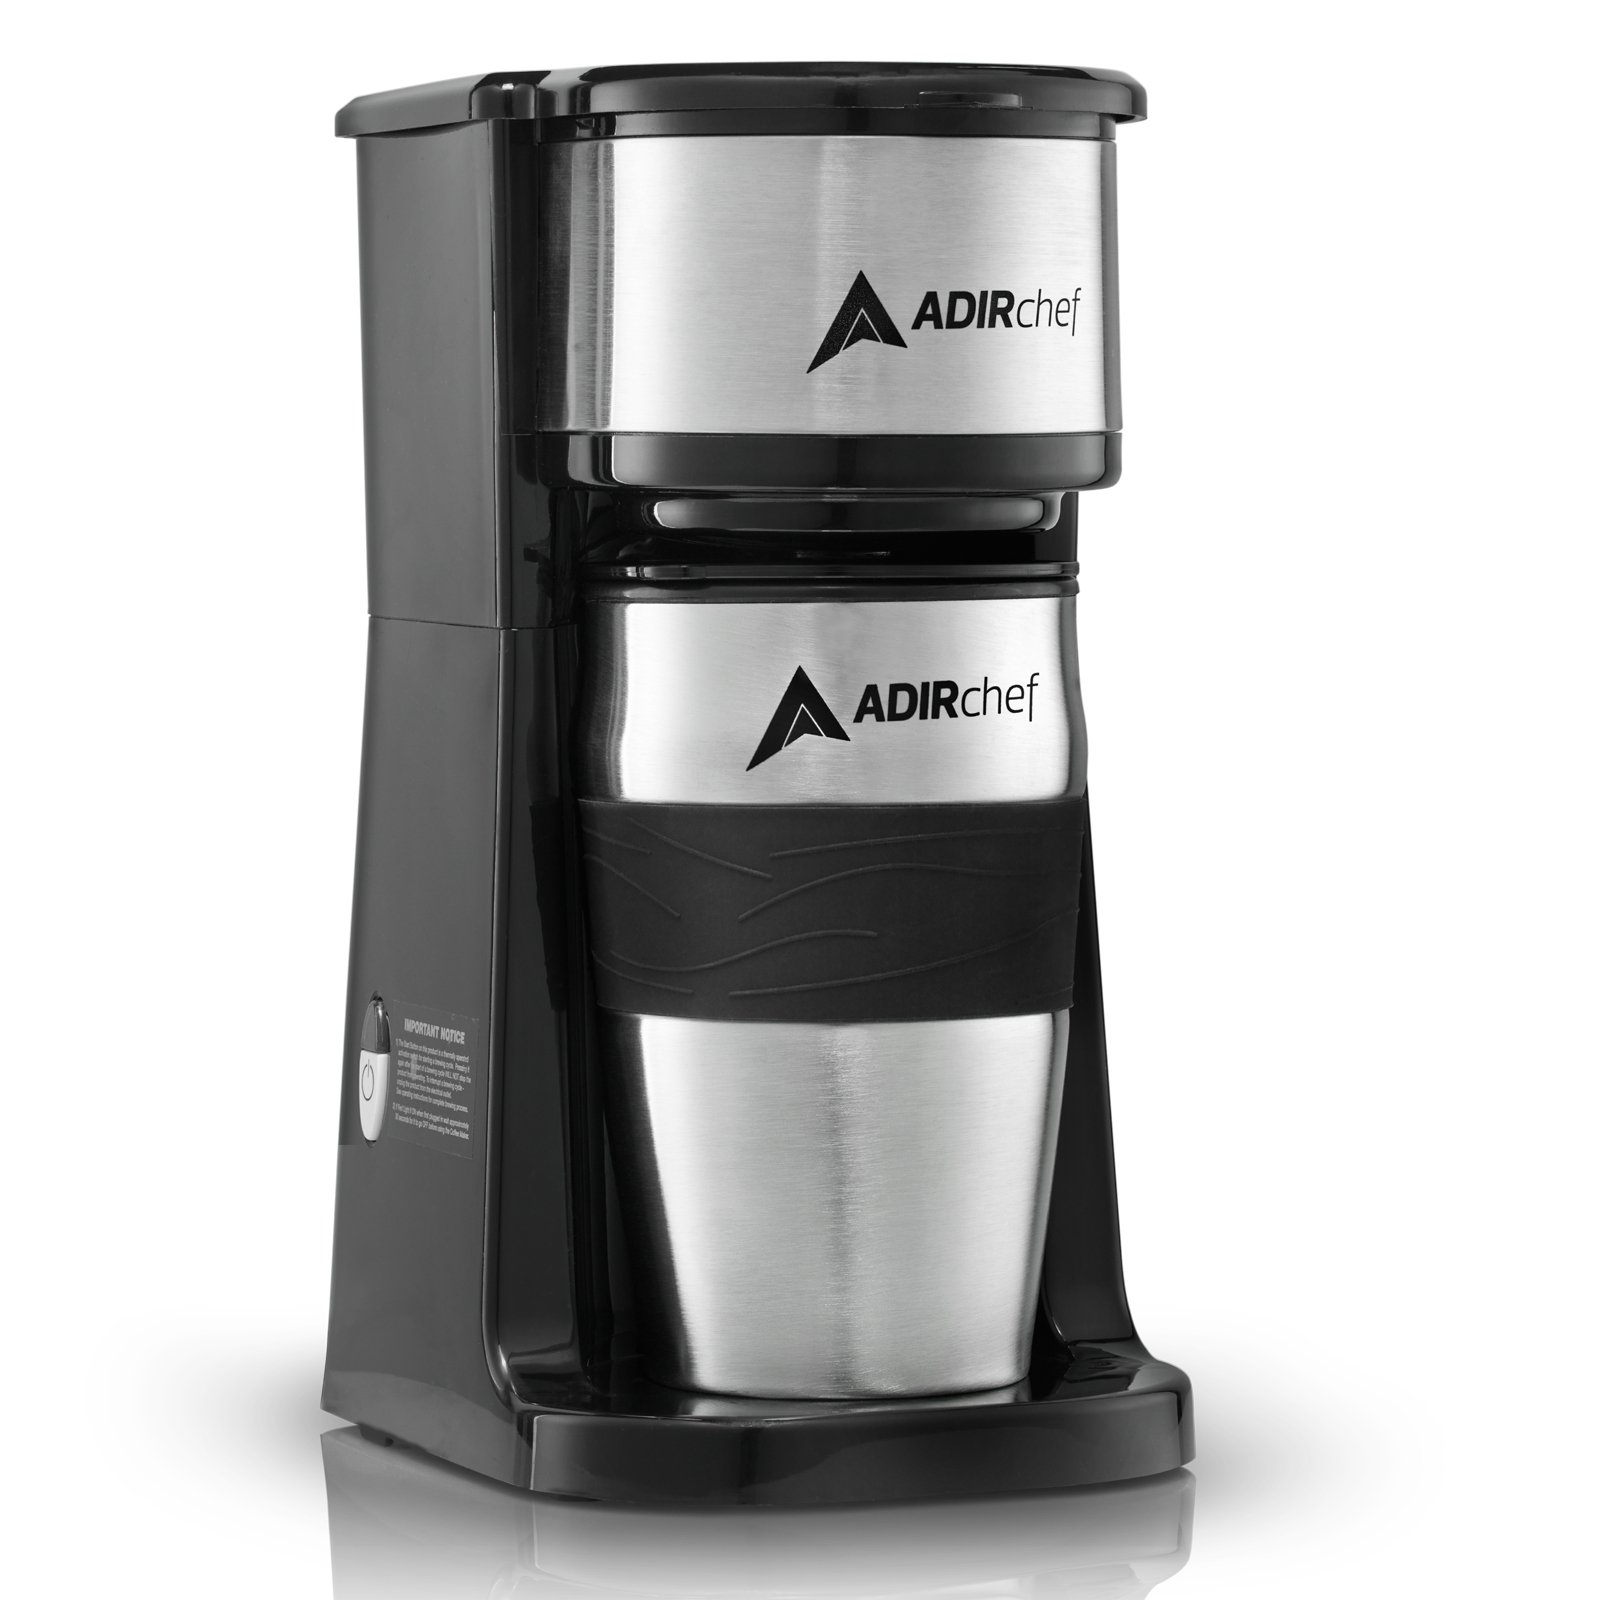 AdirChef Grab N' Go Personal Coffee Maker with 15 oz. Travel Mug, Black/Stainless Steel by AdirChef